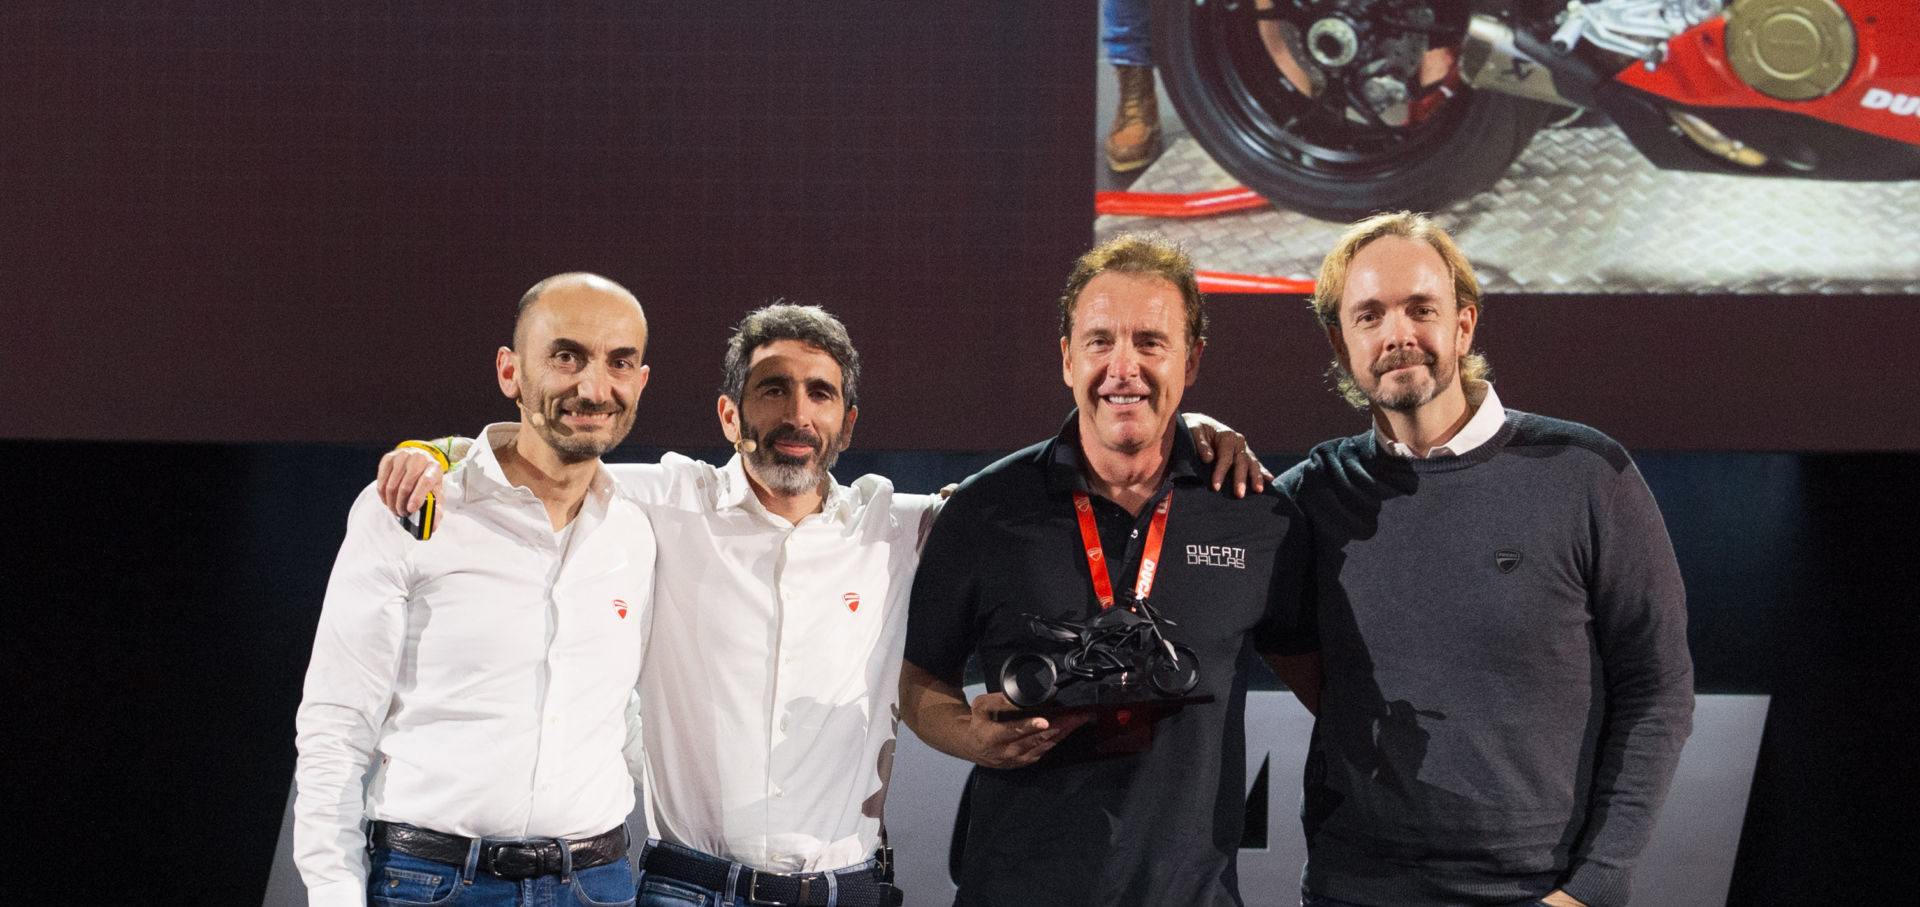 Ducati CEO Claudio Domenicali (far left), Ducati VP Global Sales & After Sales Director Francesco Milicia (second from left), AMS Ducati Dallas Founder and President Jeff Nash (second from right), and Ducati North America CEO Jason Chinnock (far right) on stage at the Ducati Global Dealer Conference in Rimini, Italy. Photo courtesy of Ducati North America.